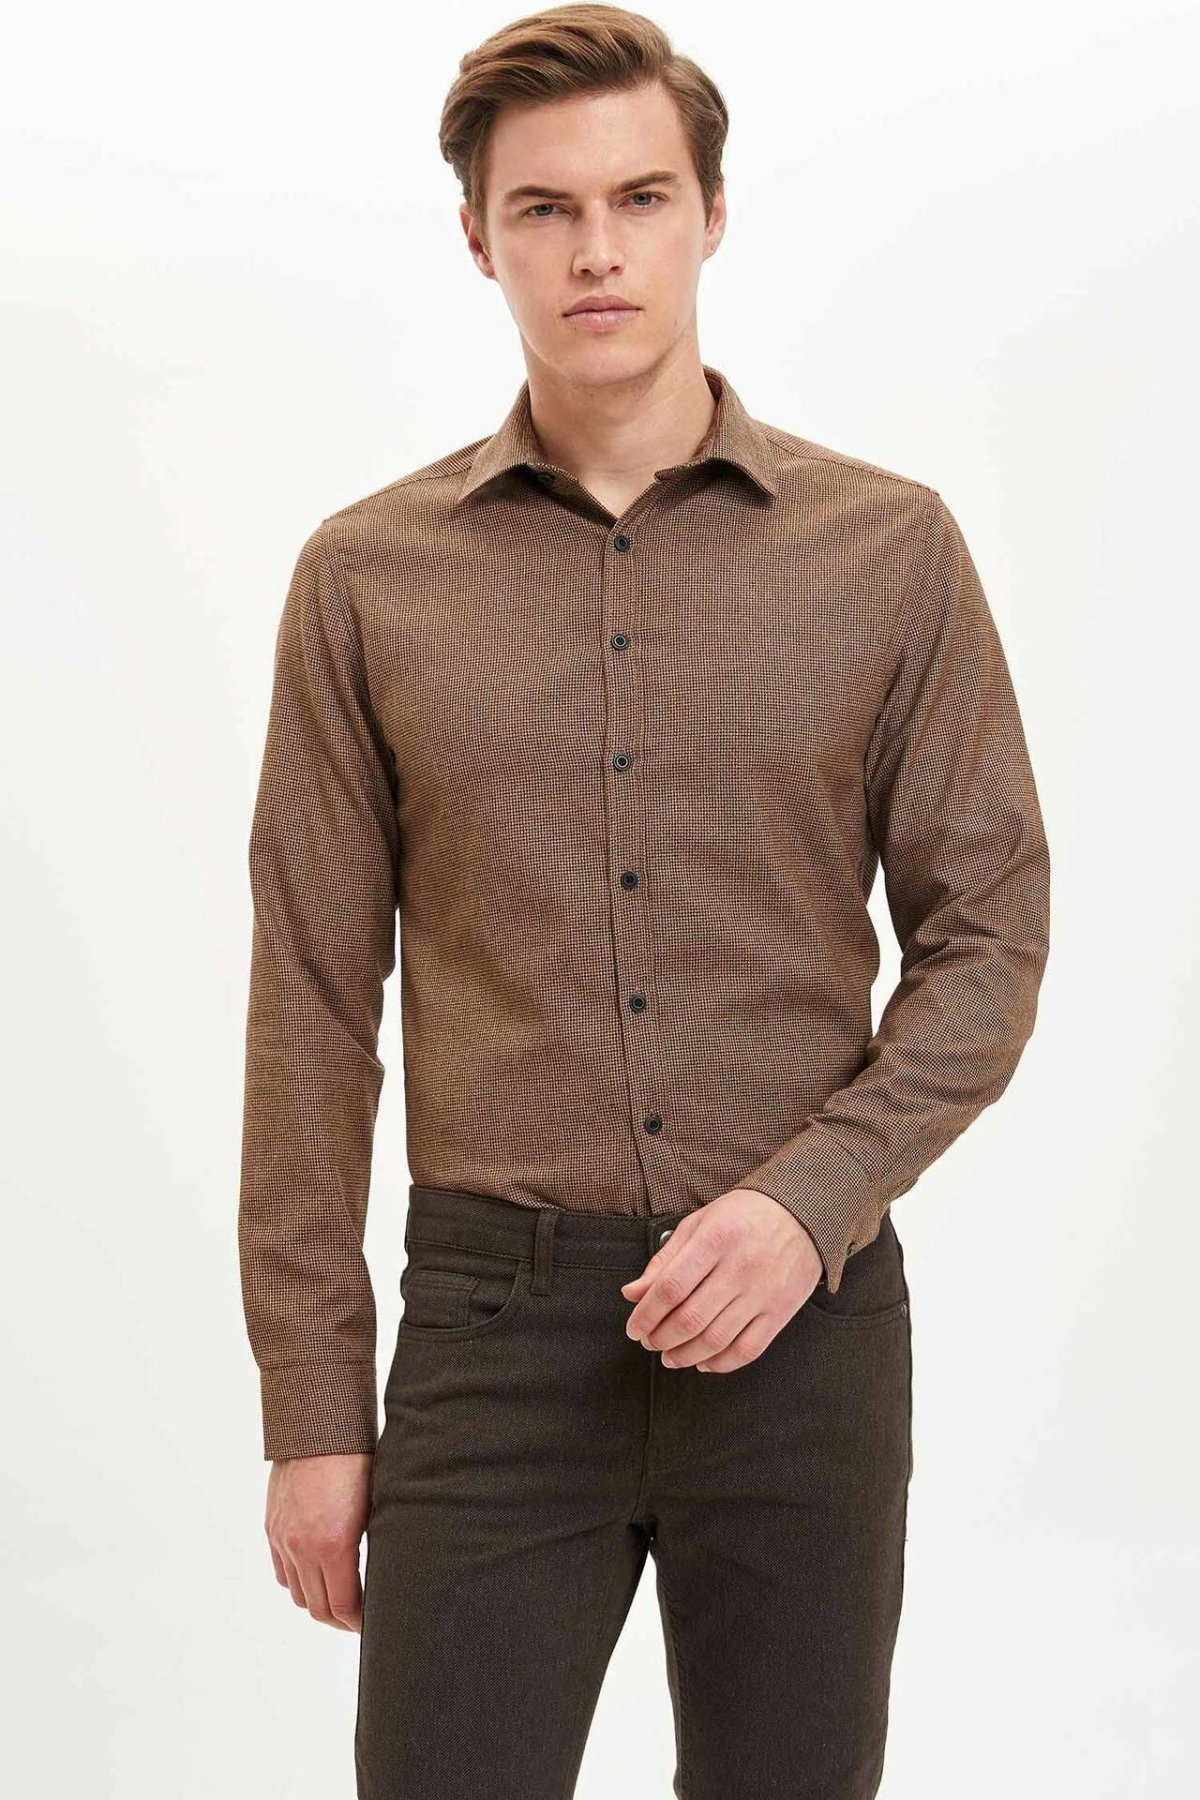 DeFacto Man Winter Solid Color Shirts Men Dark Khaki Color Top Shirts Women Smart Casual Long Sleeve Shirt-L9581AZ19WN